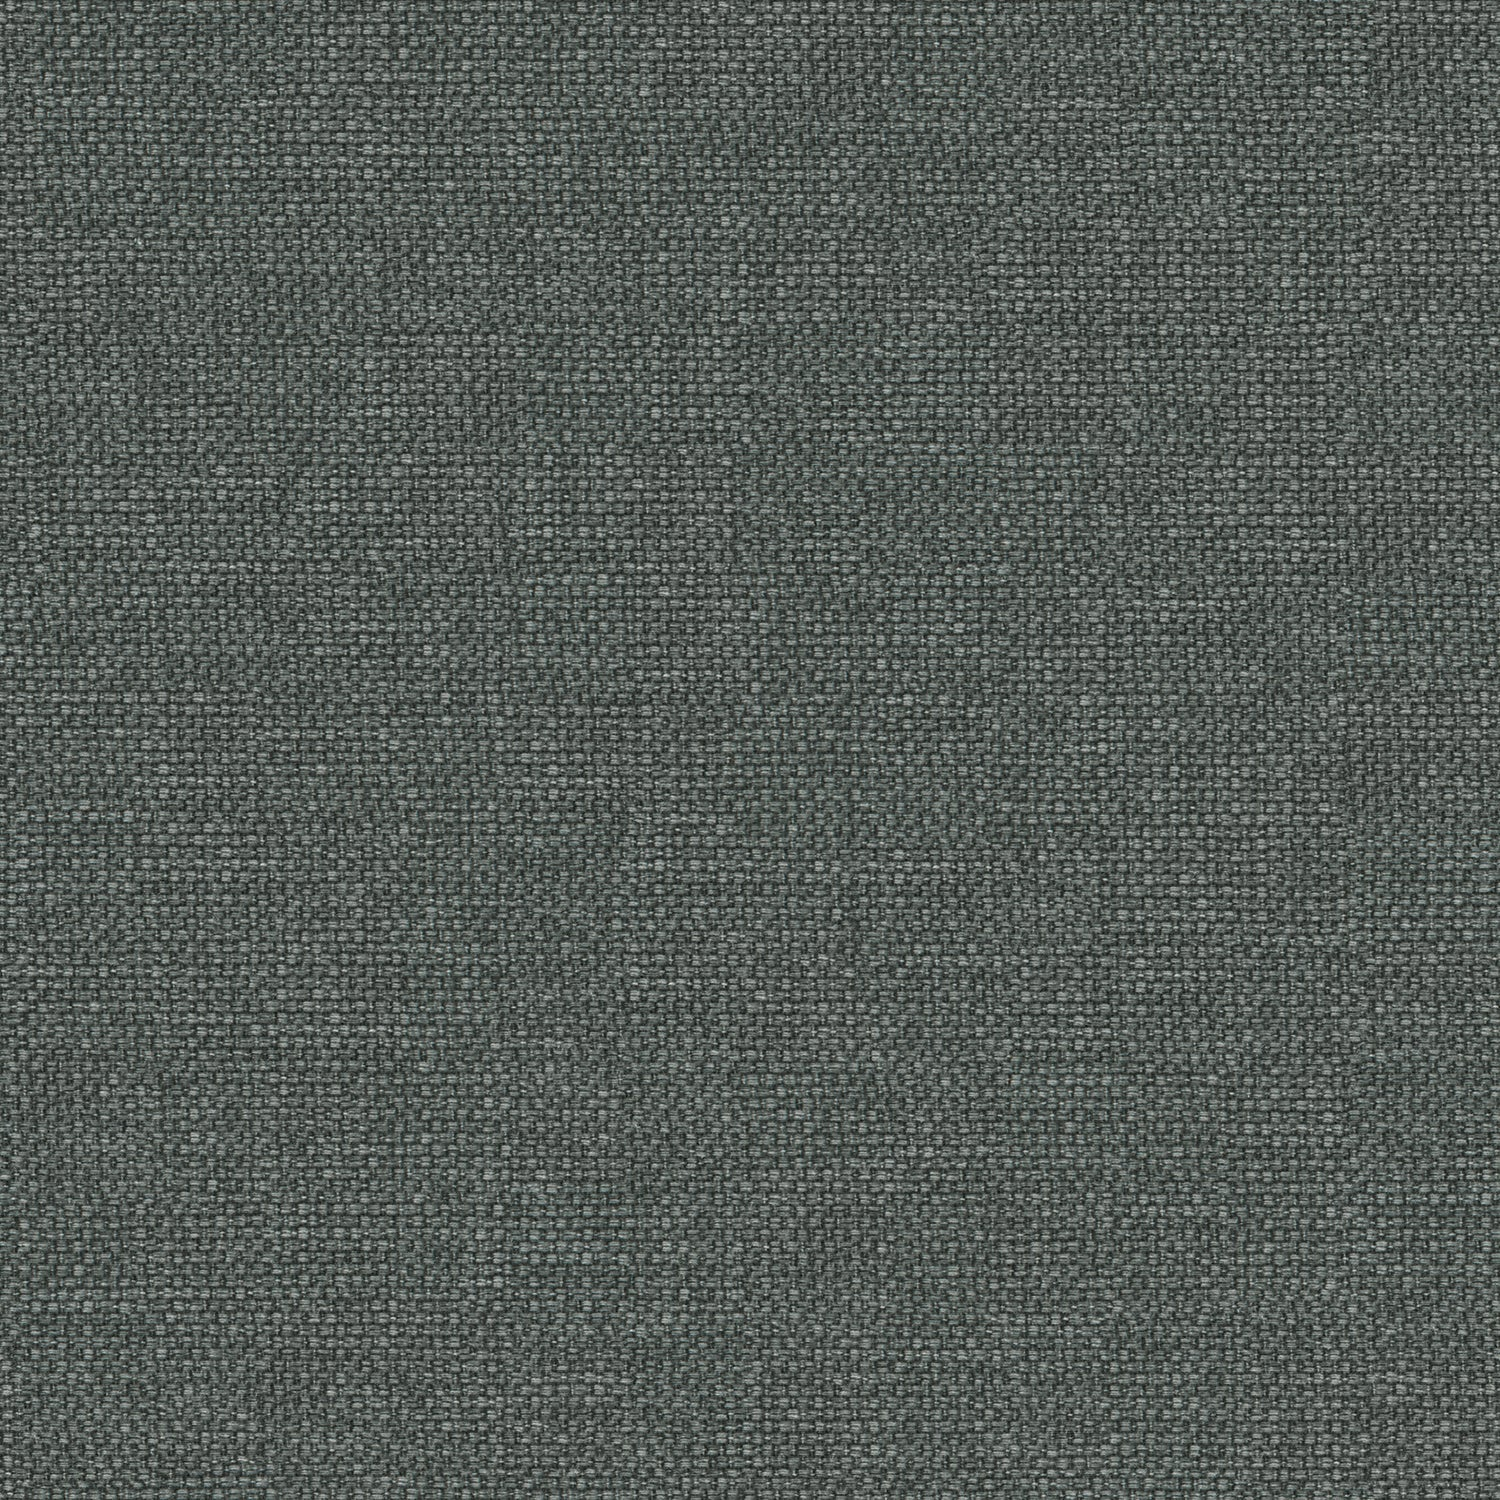 Dark blue plain washable cotton fabric for furnishings and curtains